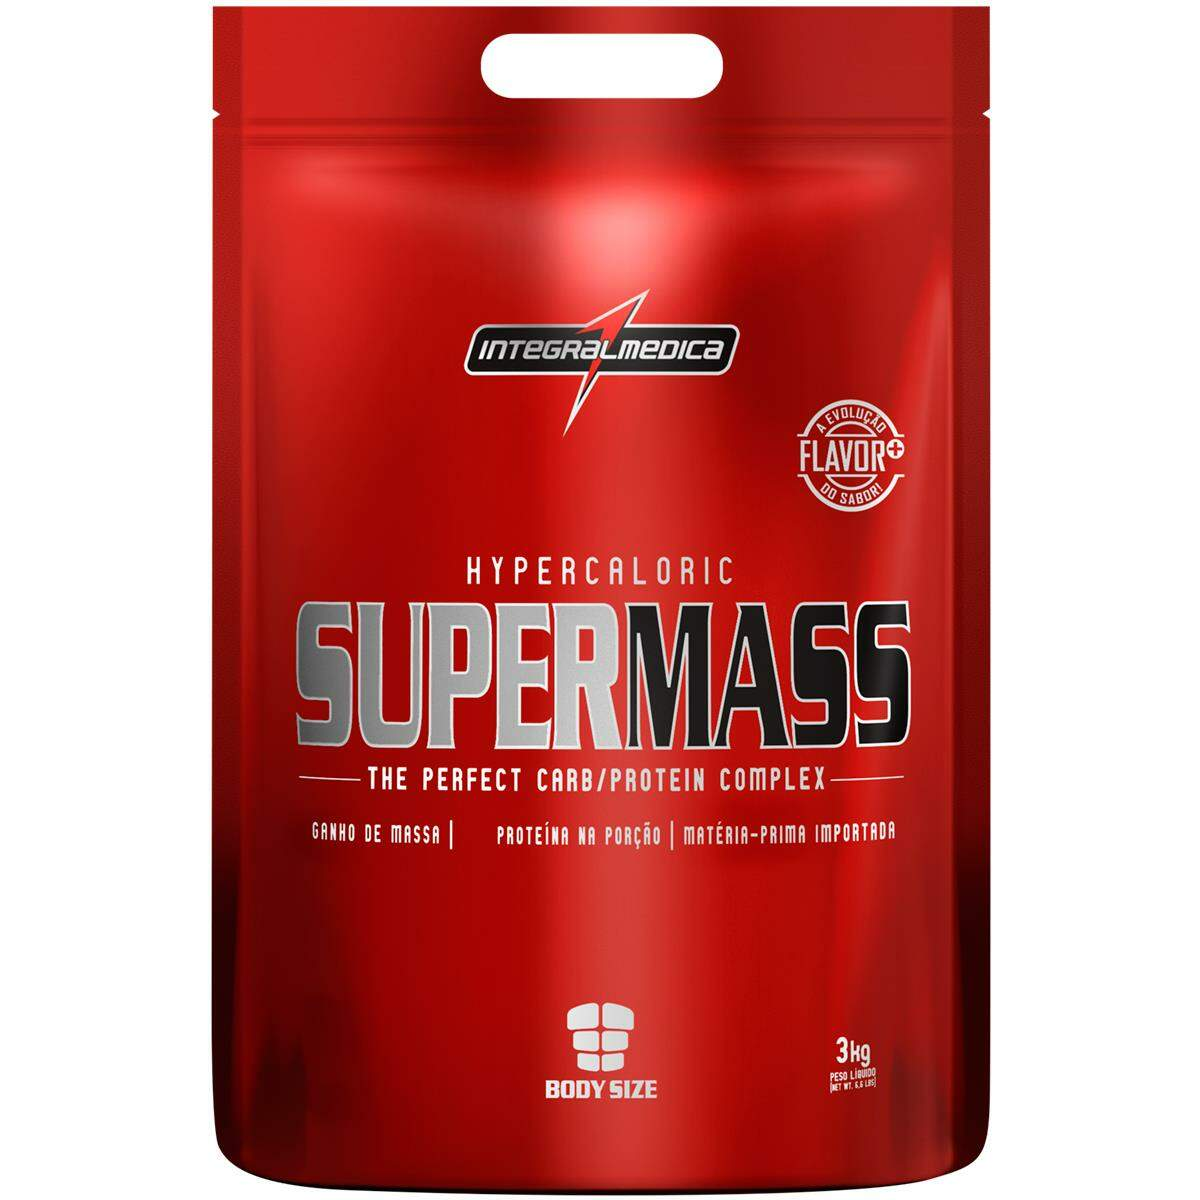 Super Mass - 3kg - Integral Médica